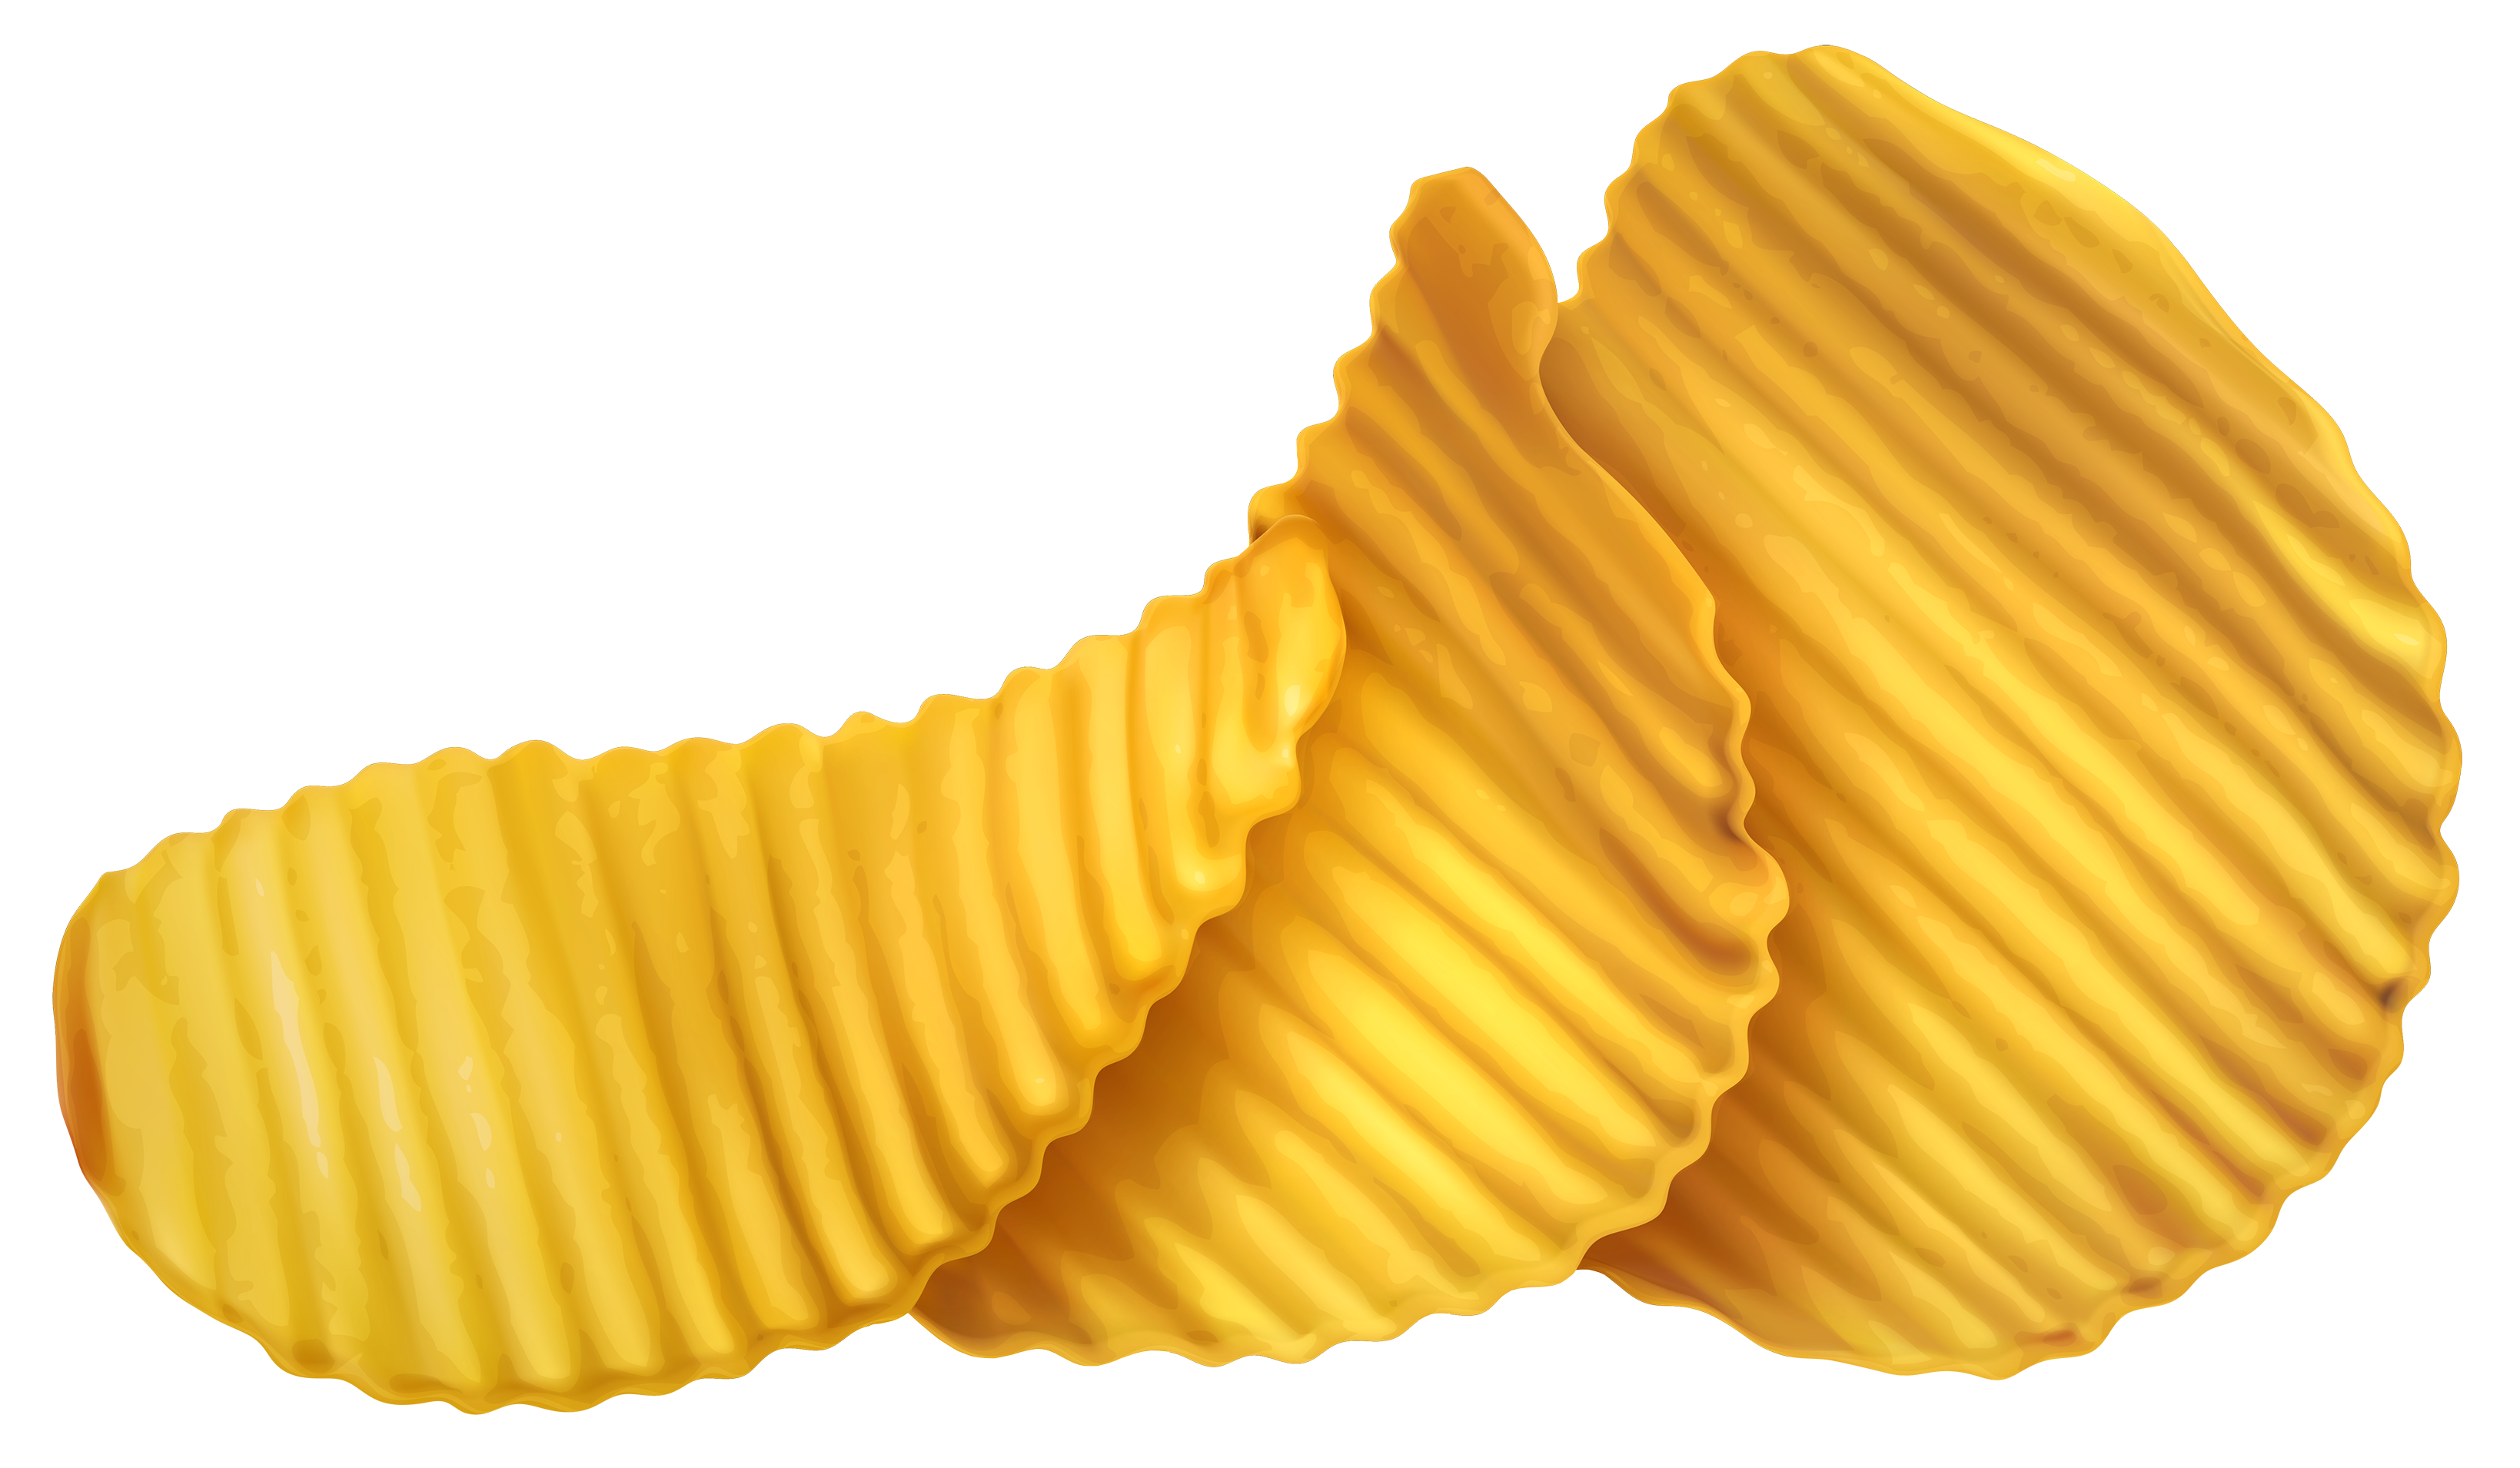 Potato Chips Png Vector Clipart Png 3278 1910 Potato Chips Chips Chocolate Potato Chips